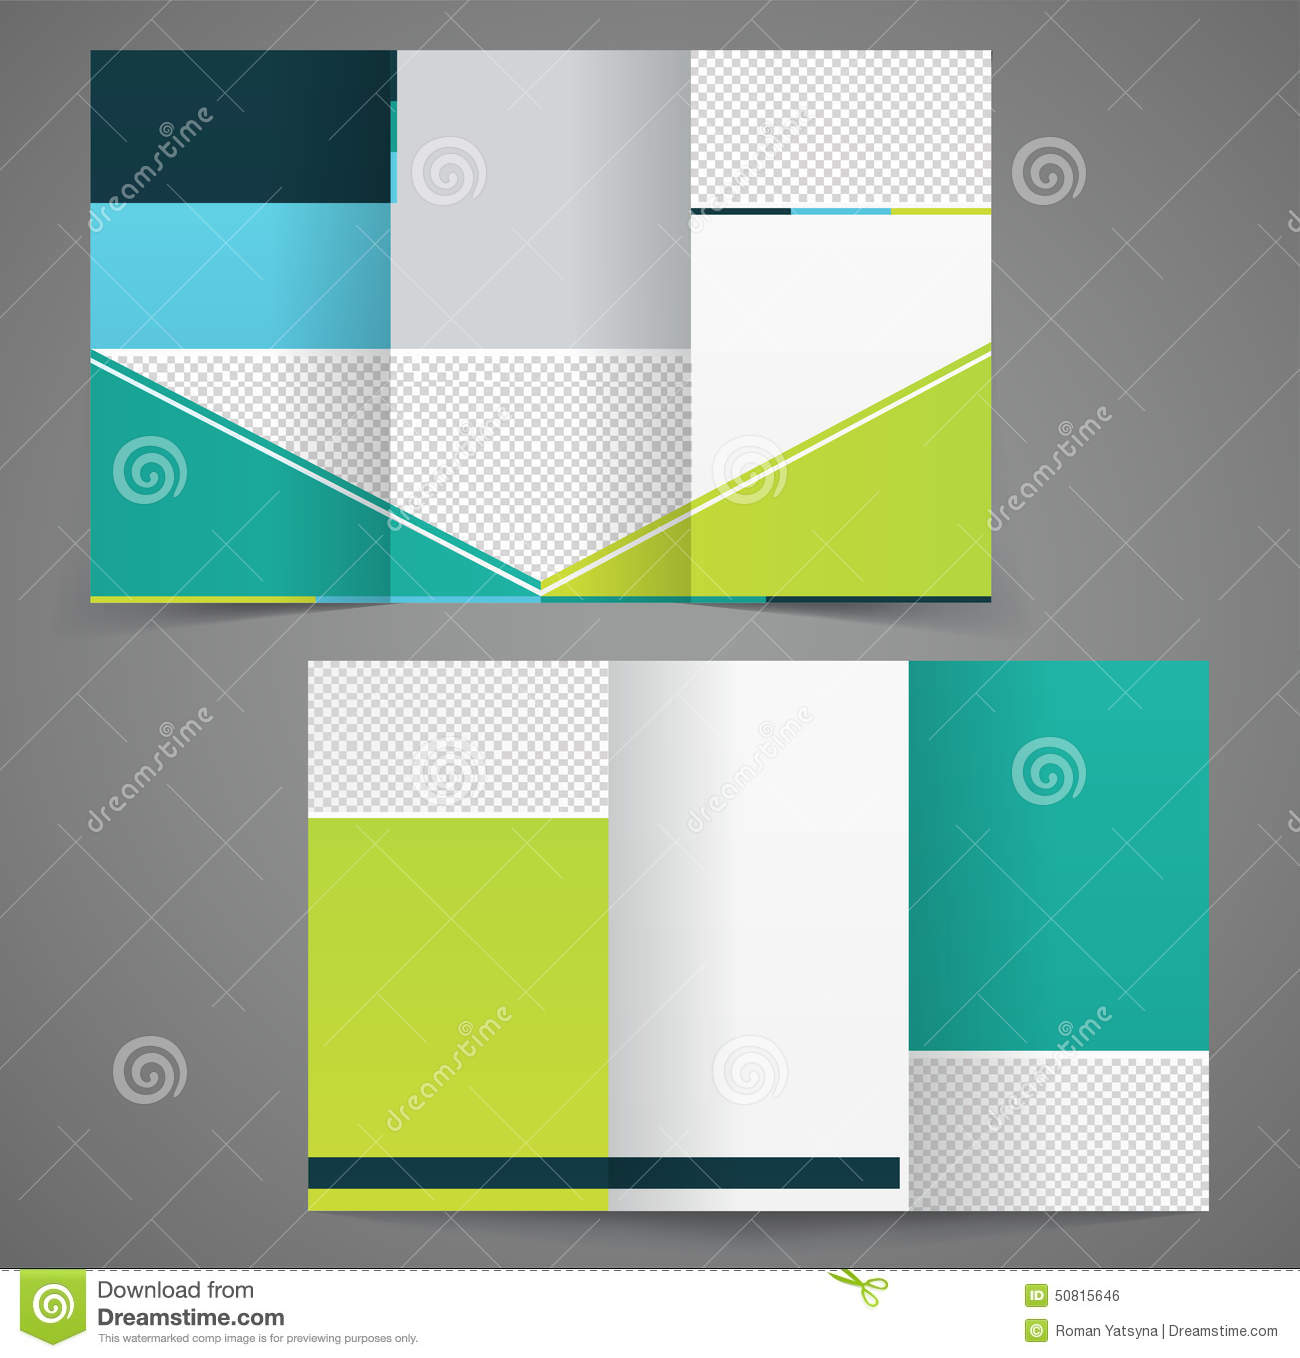 two fold brochure templates free download - tri fold business brochure template two sided template